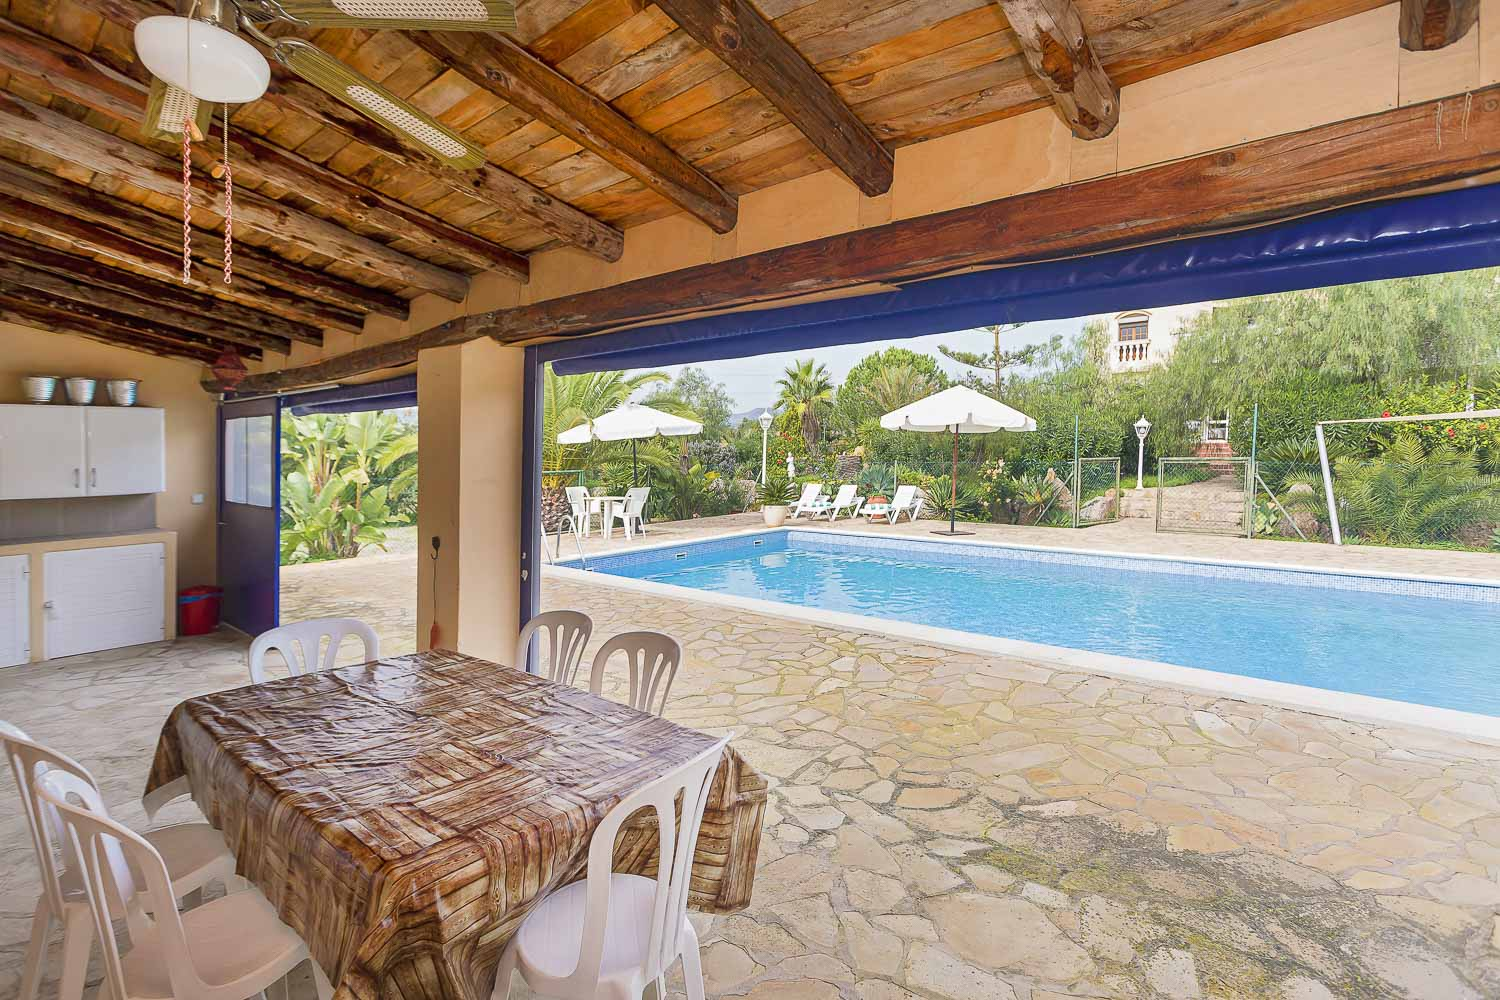 Terrace with pool view in a rental house in Ibiza